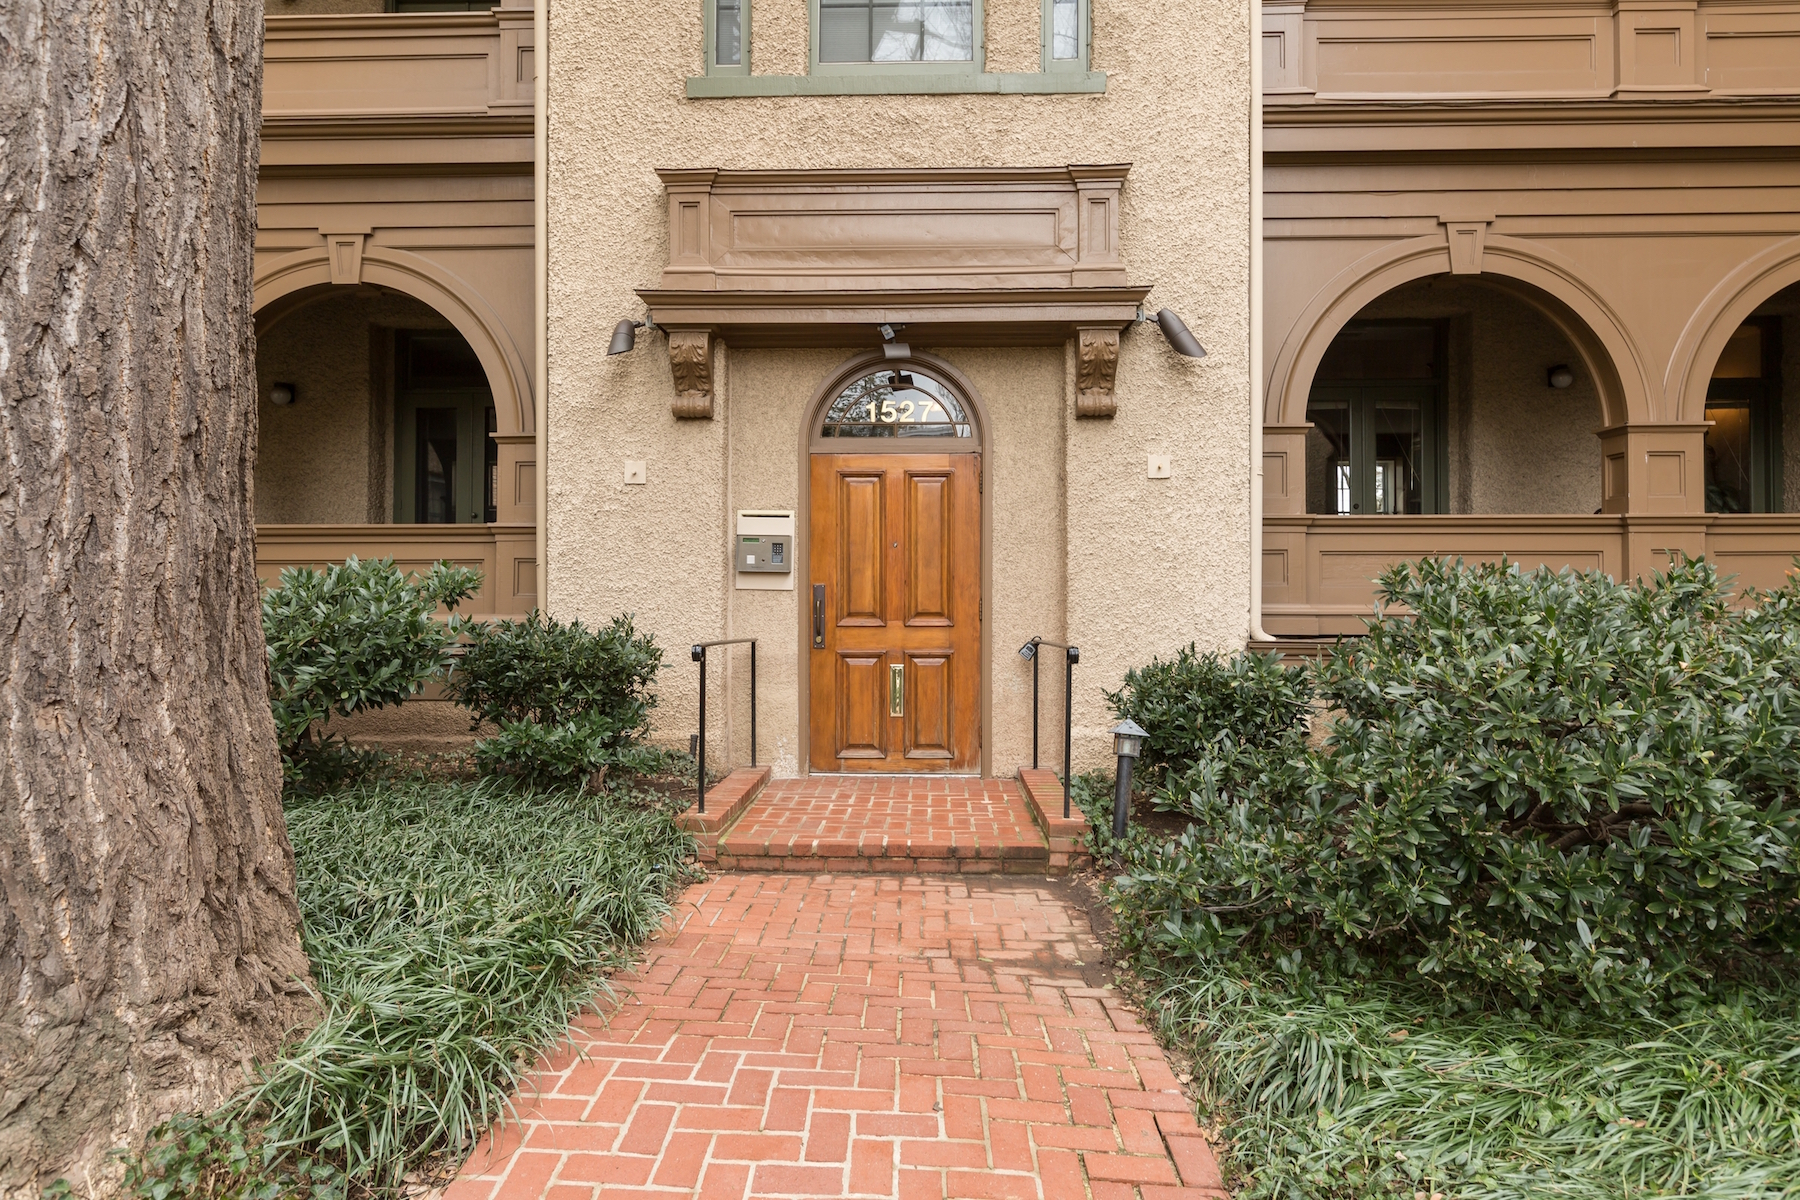 Additional photo for property listing at Rarely Available: Historic Georgetown Condominium 1527 30th Street Nw B21 华盛顿市, 哥伦比亚特区 20007 美国